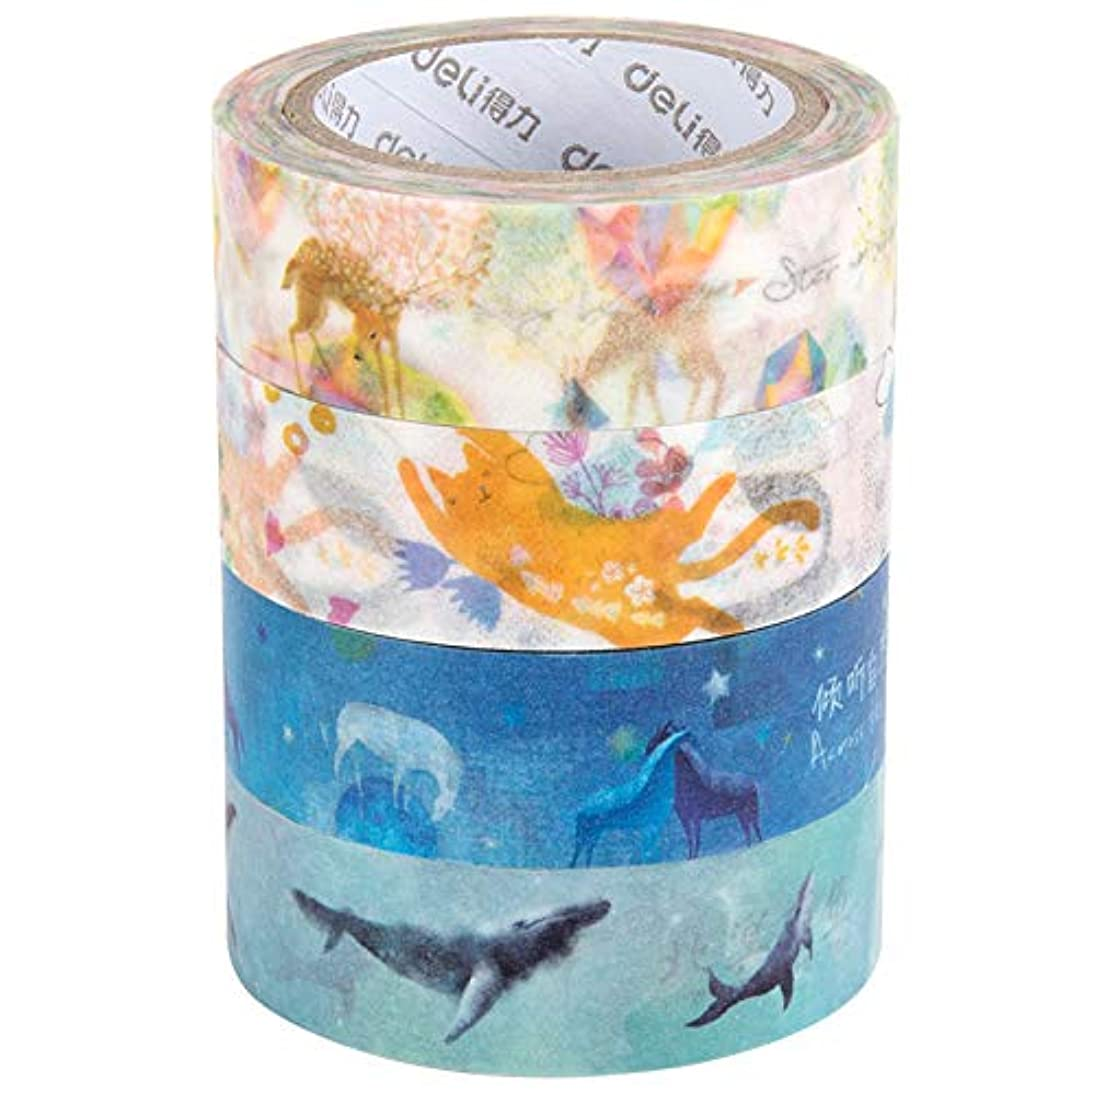 Masking Tape,Craft Multi Colored Masking Tape [4 Rolls Variety- Assorted Color Coded Rolls]- Fun DIY Arts Supplies Kit M-Jump 33FT Washi Tapes for Arts and Crafts, Scrapbook Masking Paper (1packages)